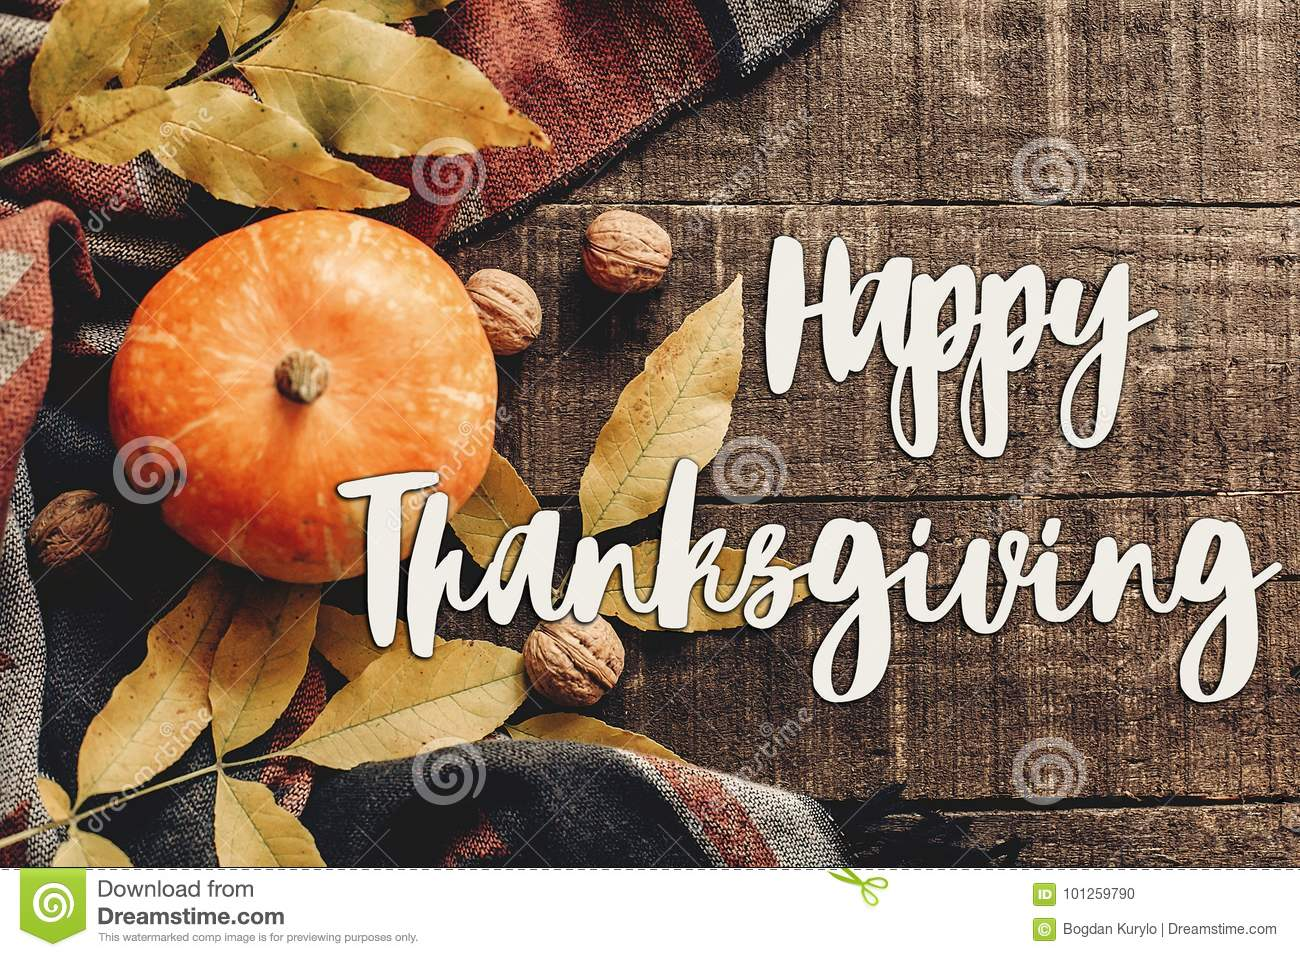 Happy thanksgiving text sign flat lay. pumpkin with leaves and